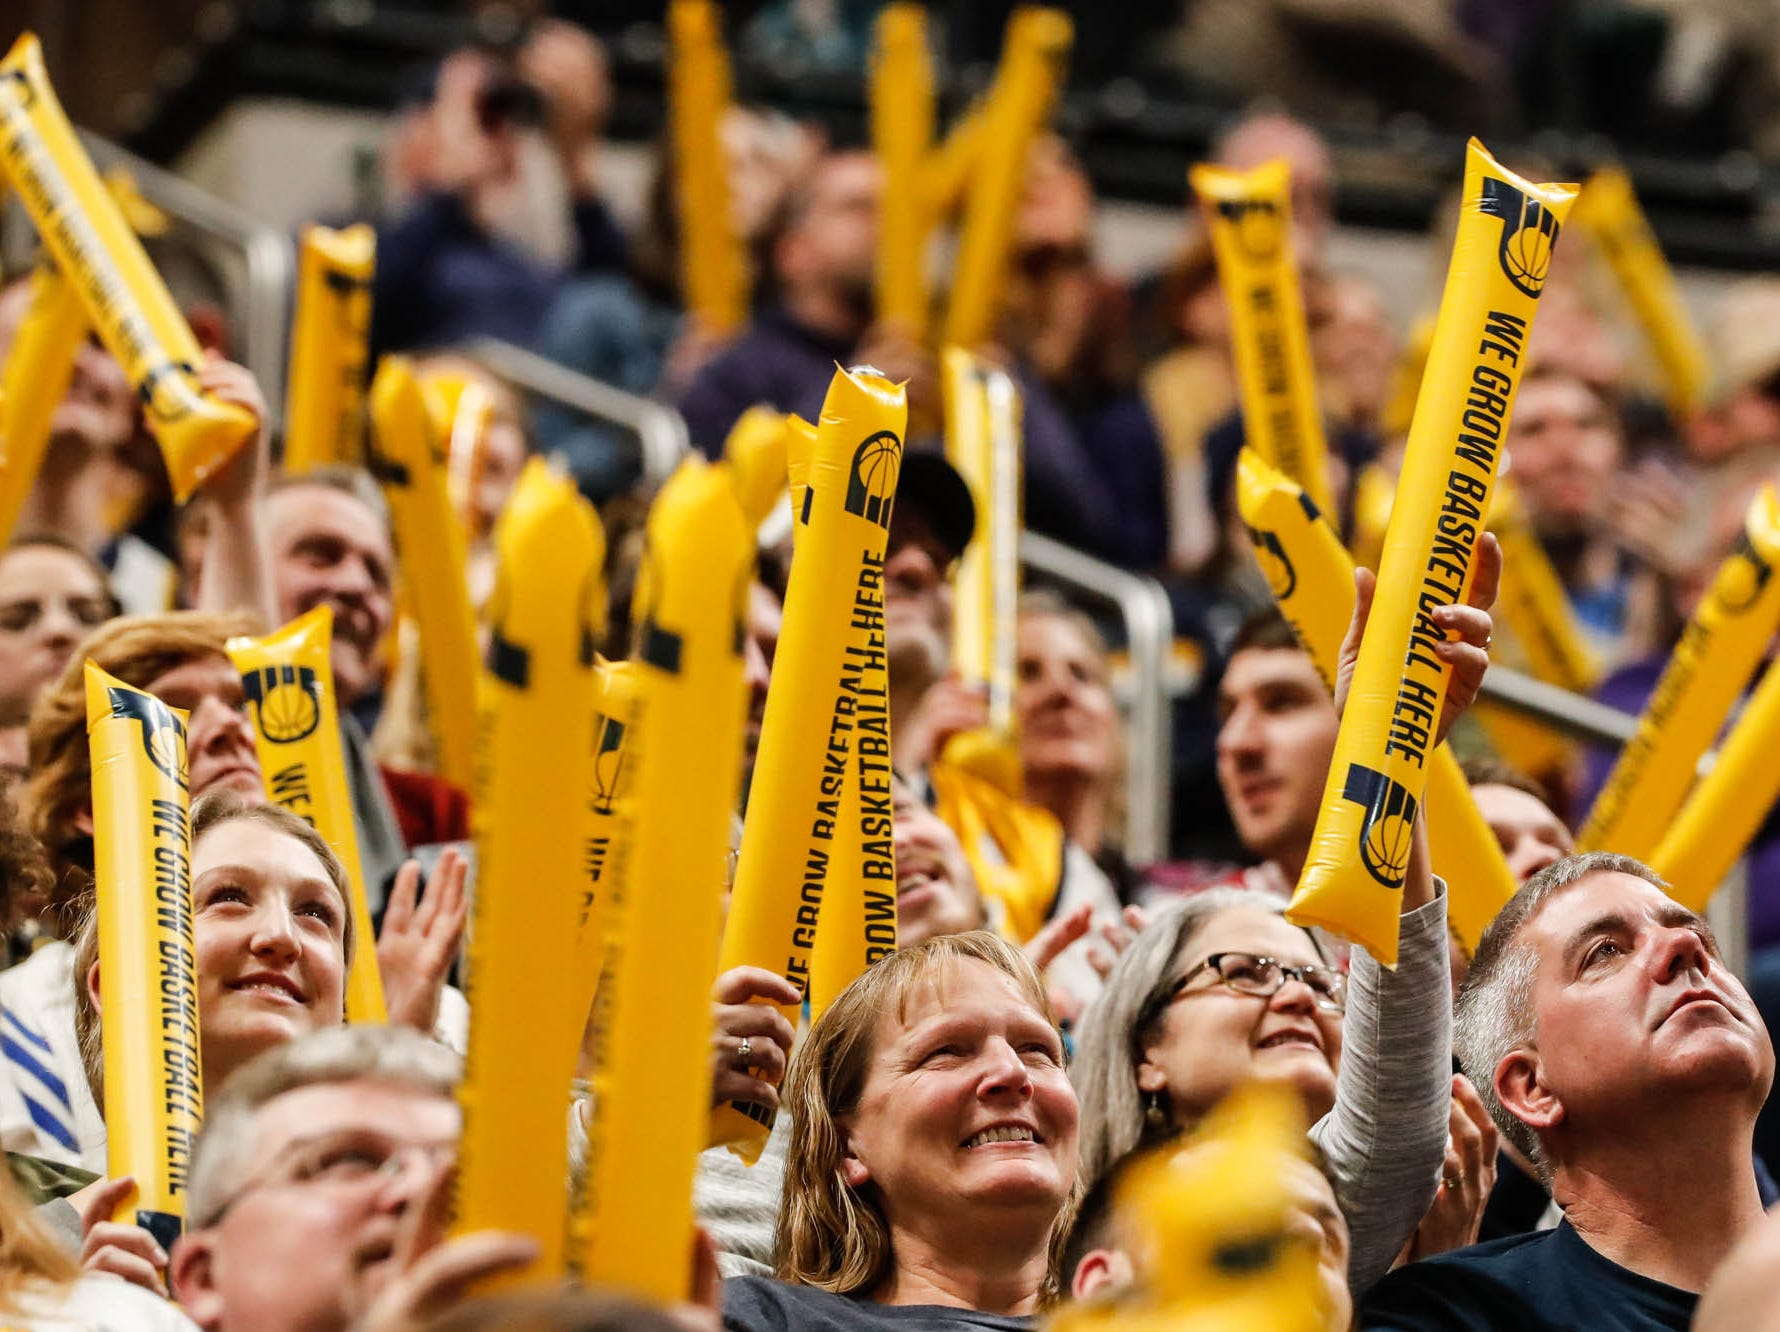 Fans wave their boom sticks during a game between the Pacers and Hornets at Bankers Life Fieldhouse on Sunday, Jan. 20, 2019.